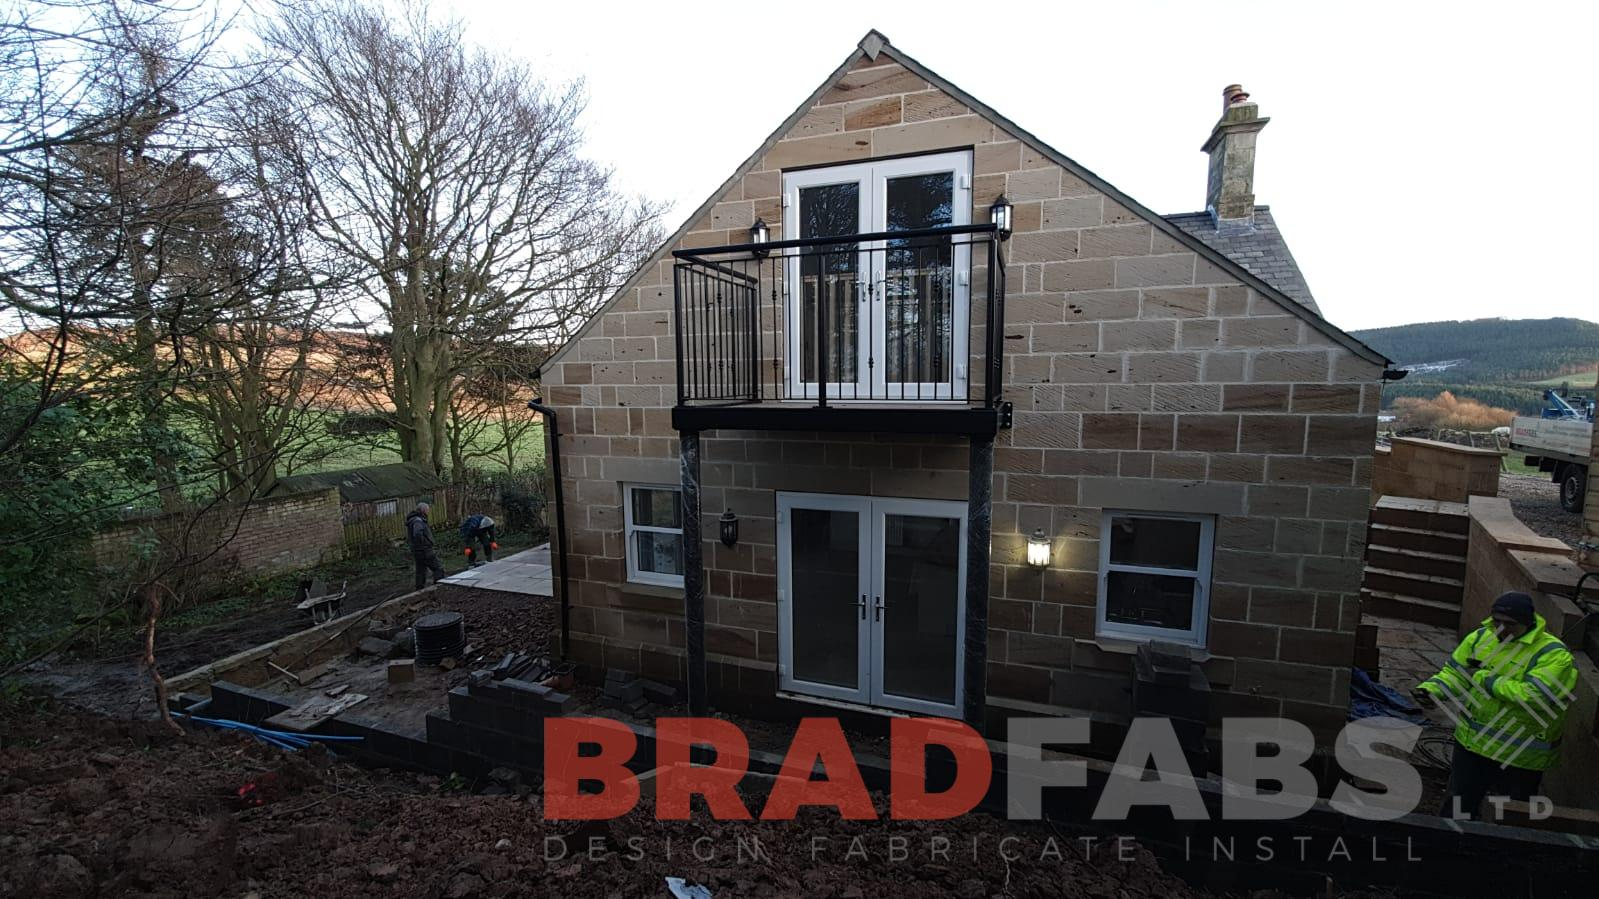 Bradfabs ltd, balcony with supporting legs, vertical decorative balustrade, bespoke balcony, mild steel, galvanised and powder coated black, composite decked flooring